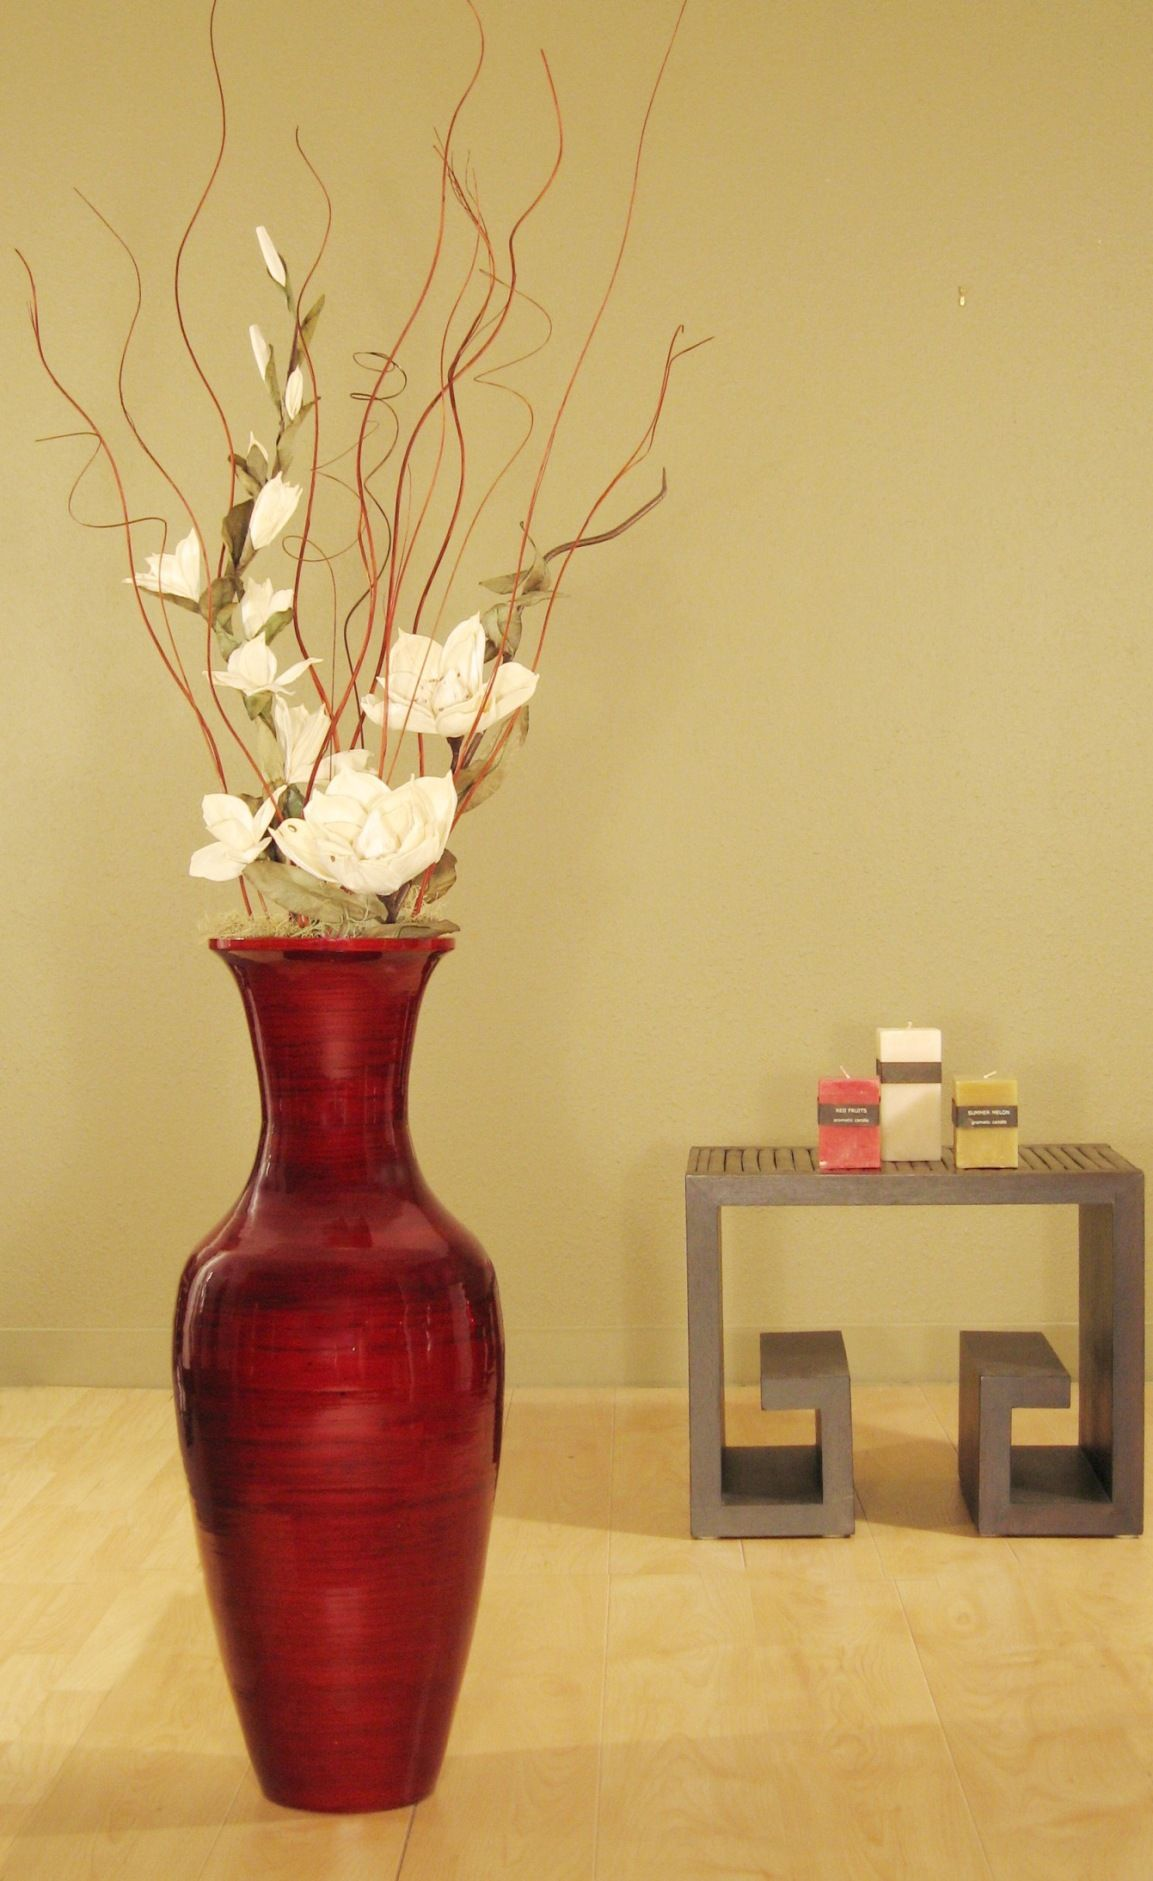 Home Vases Accent Your Home Decor With This Bamboo Floor Vase And